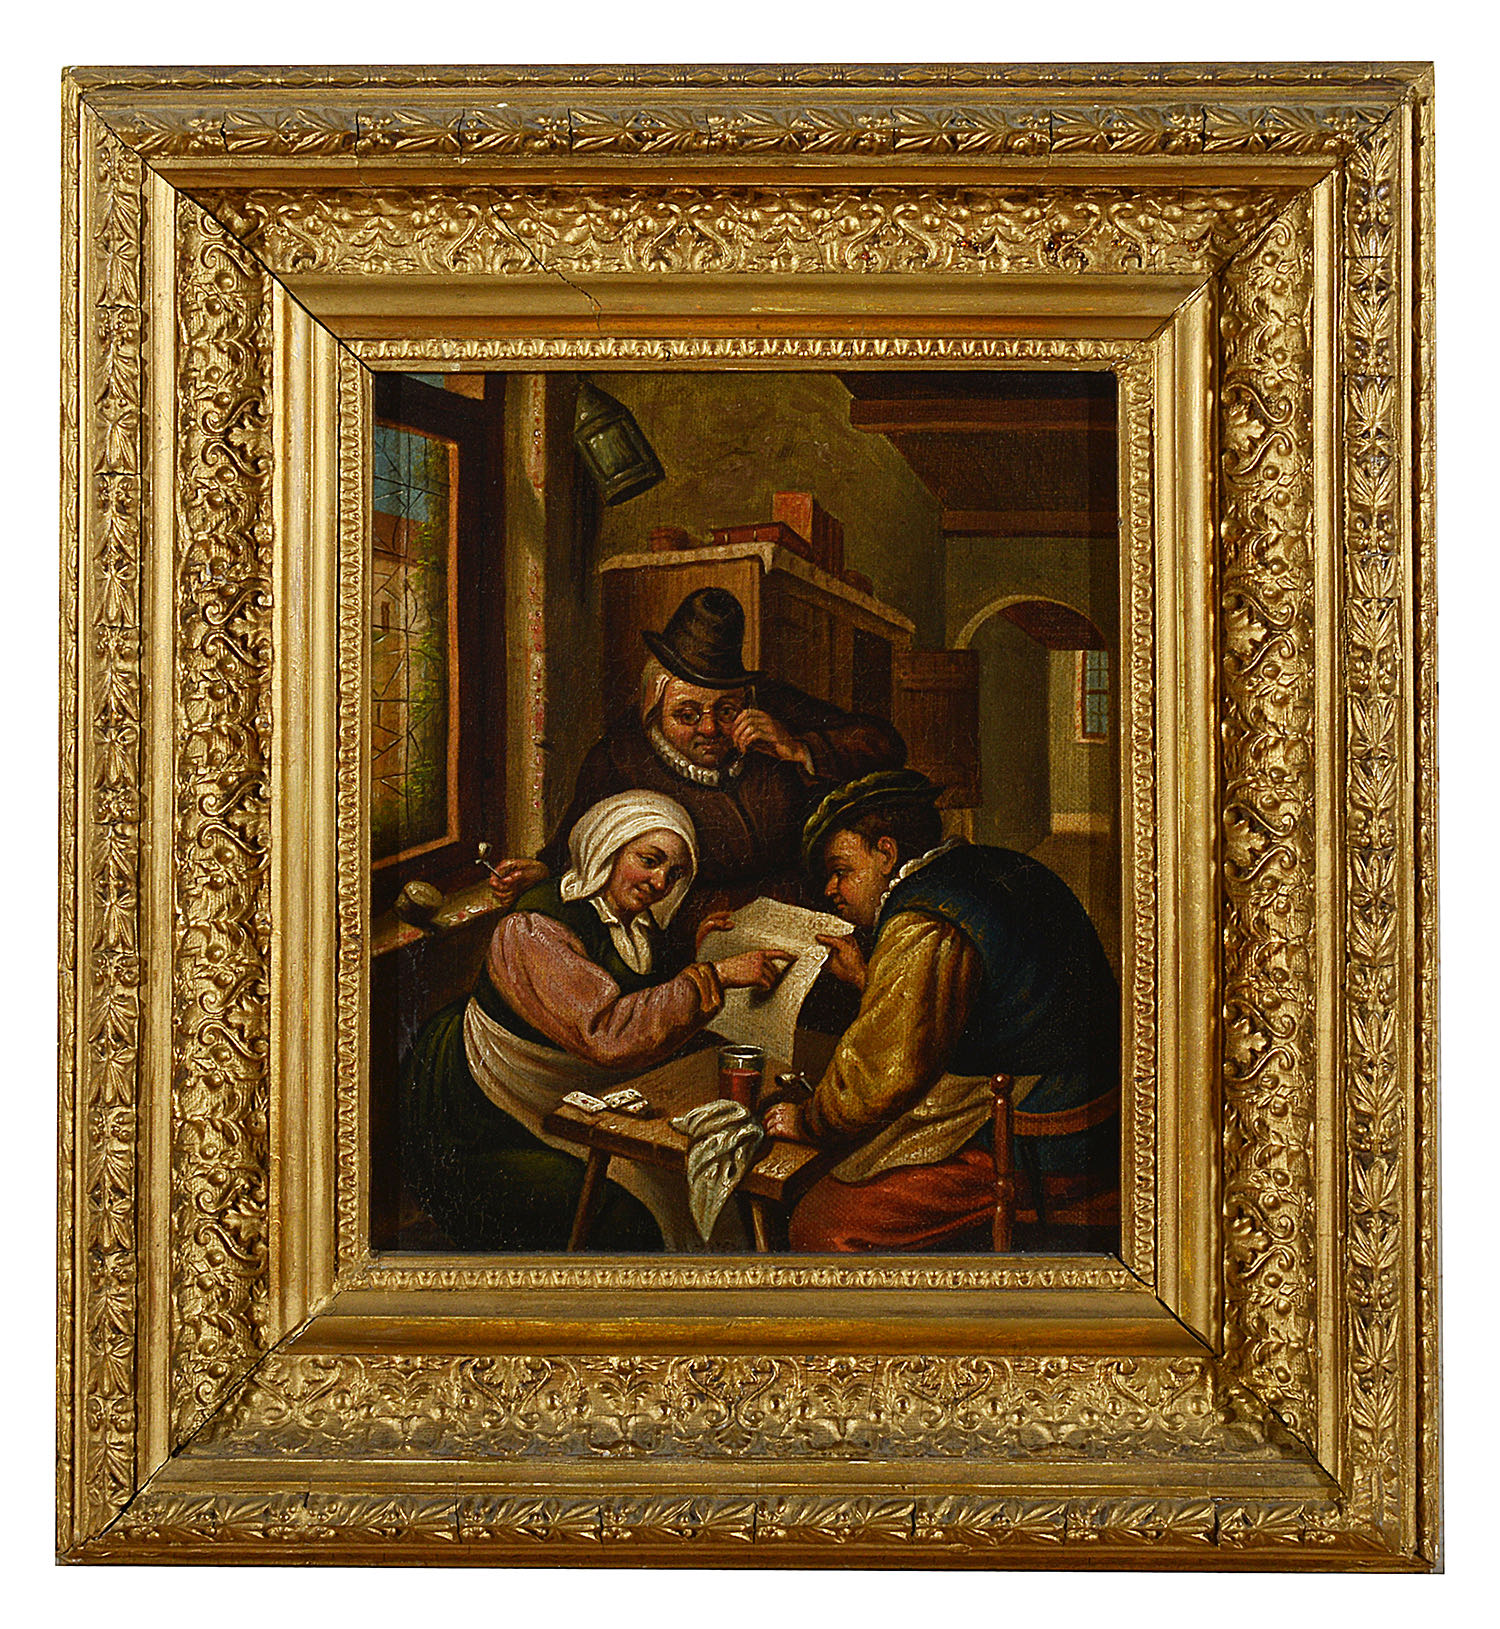 Lot 45 - Three late 18th / early 19th c Dutch school tavern genre scenes in the manner of Jan Steen